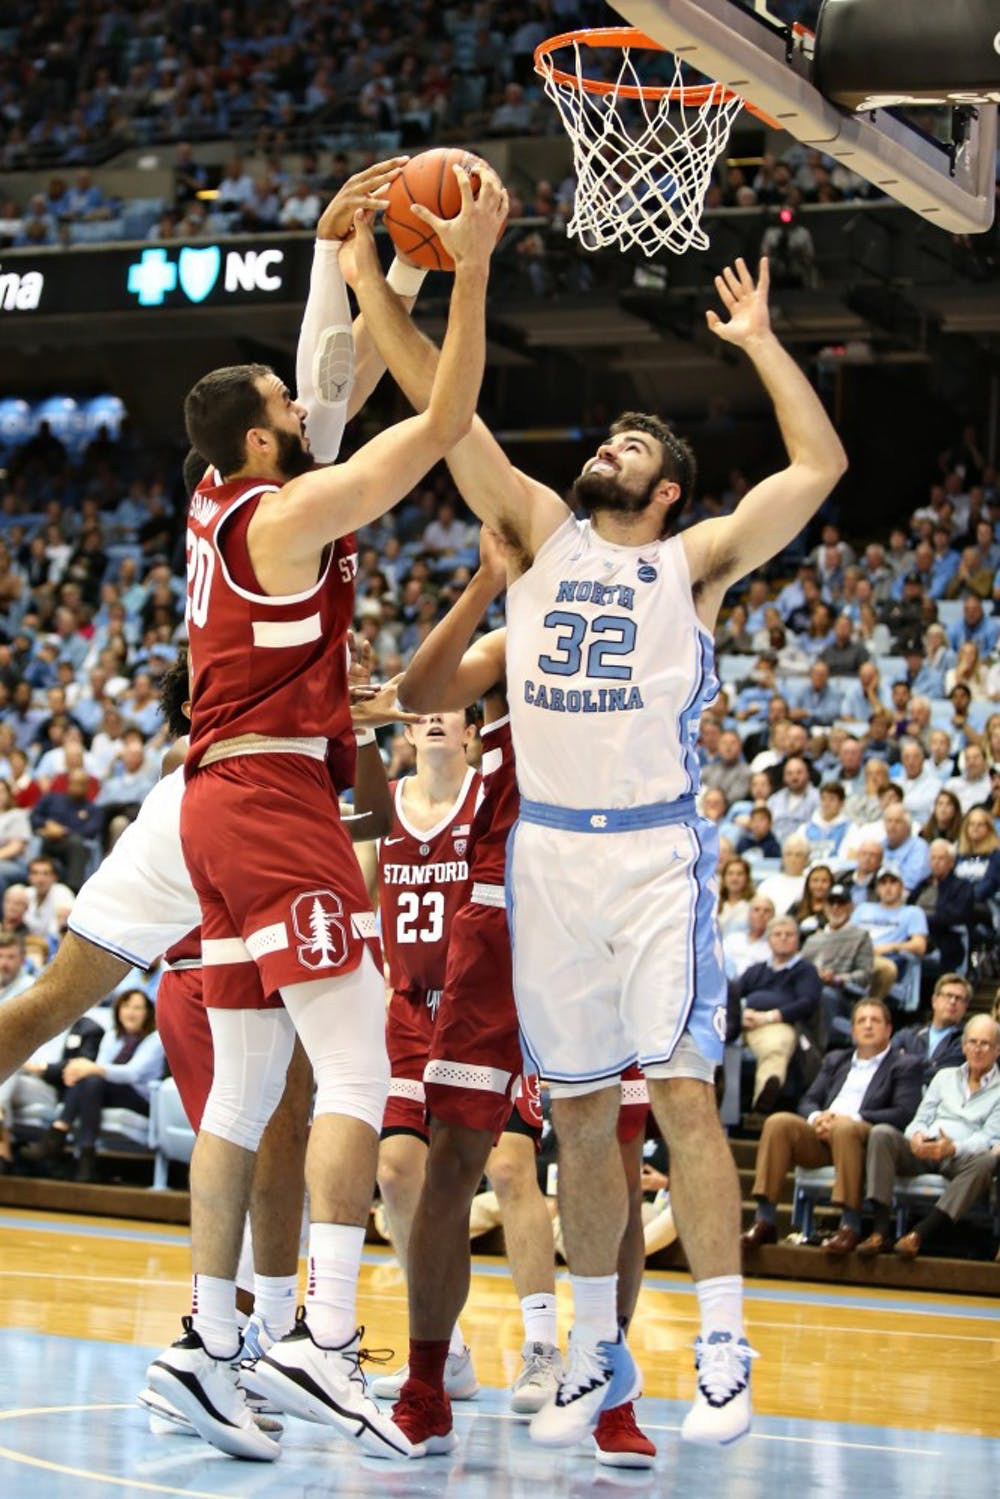 Roy Williams wasn't happy about his team's defense in a win over Stanford. Here's why: